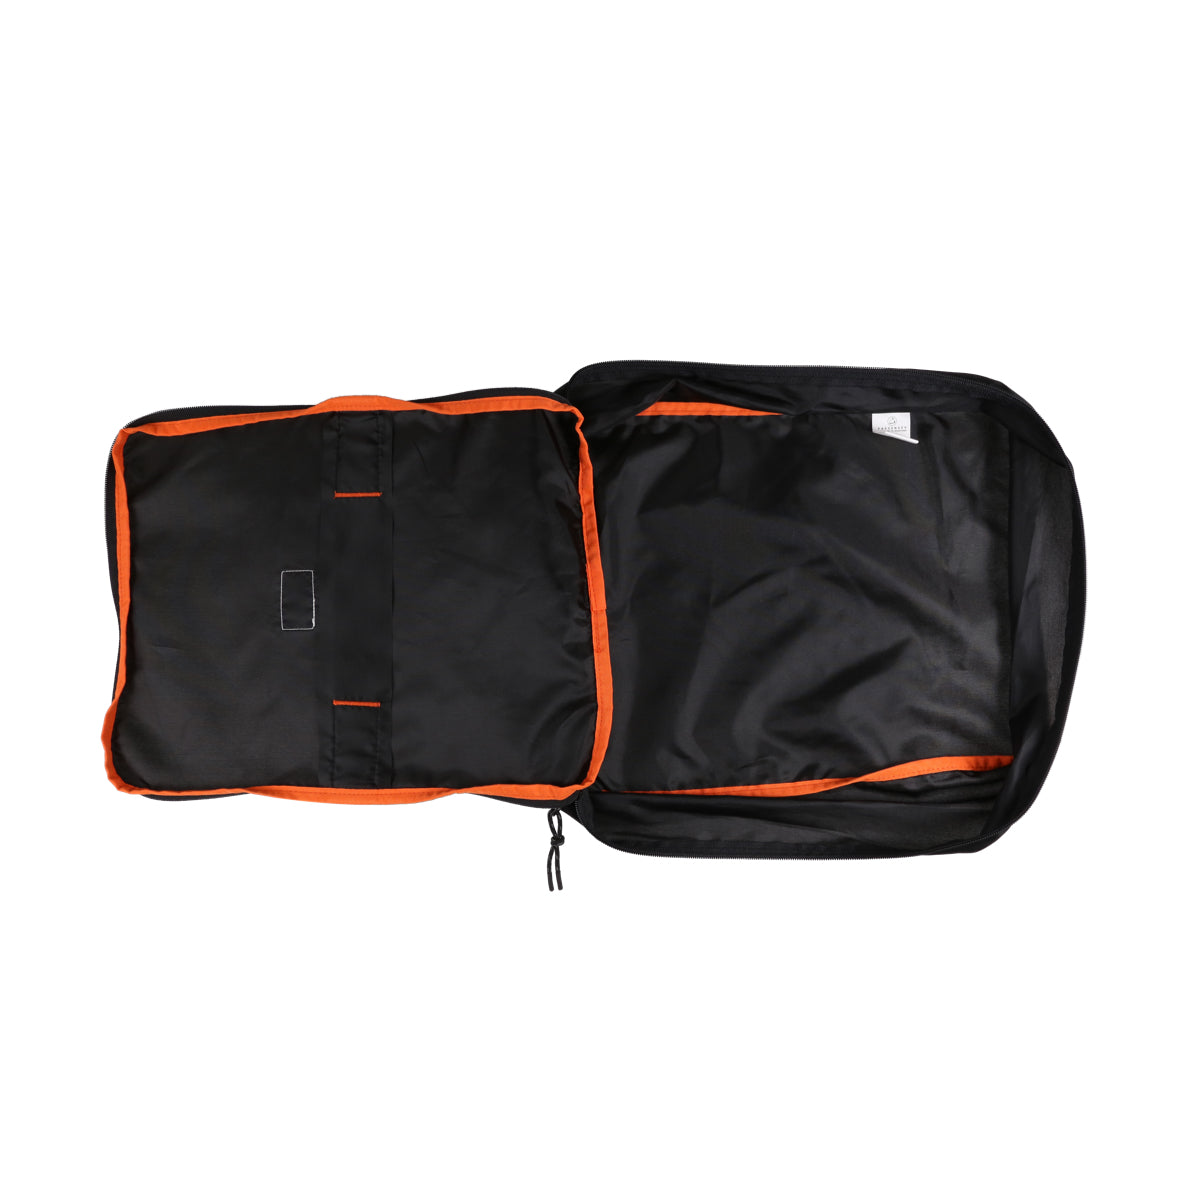 Collective Packing Cube Large - Black image 3